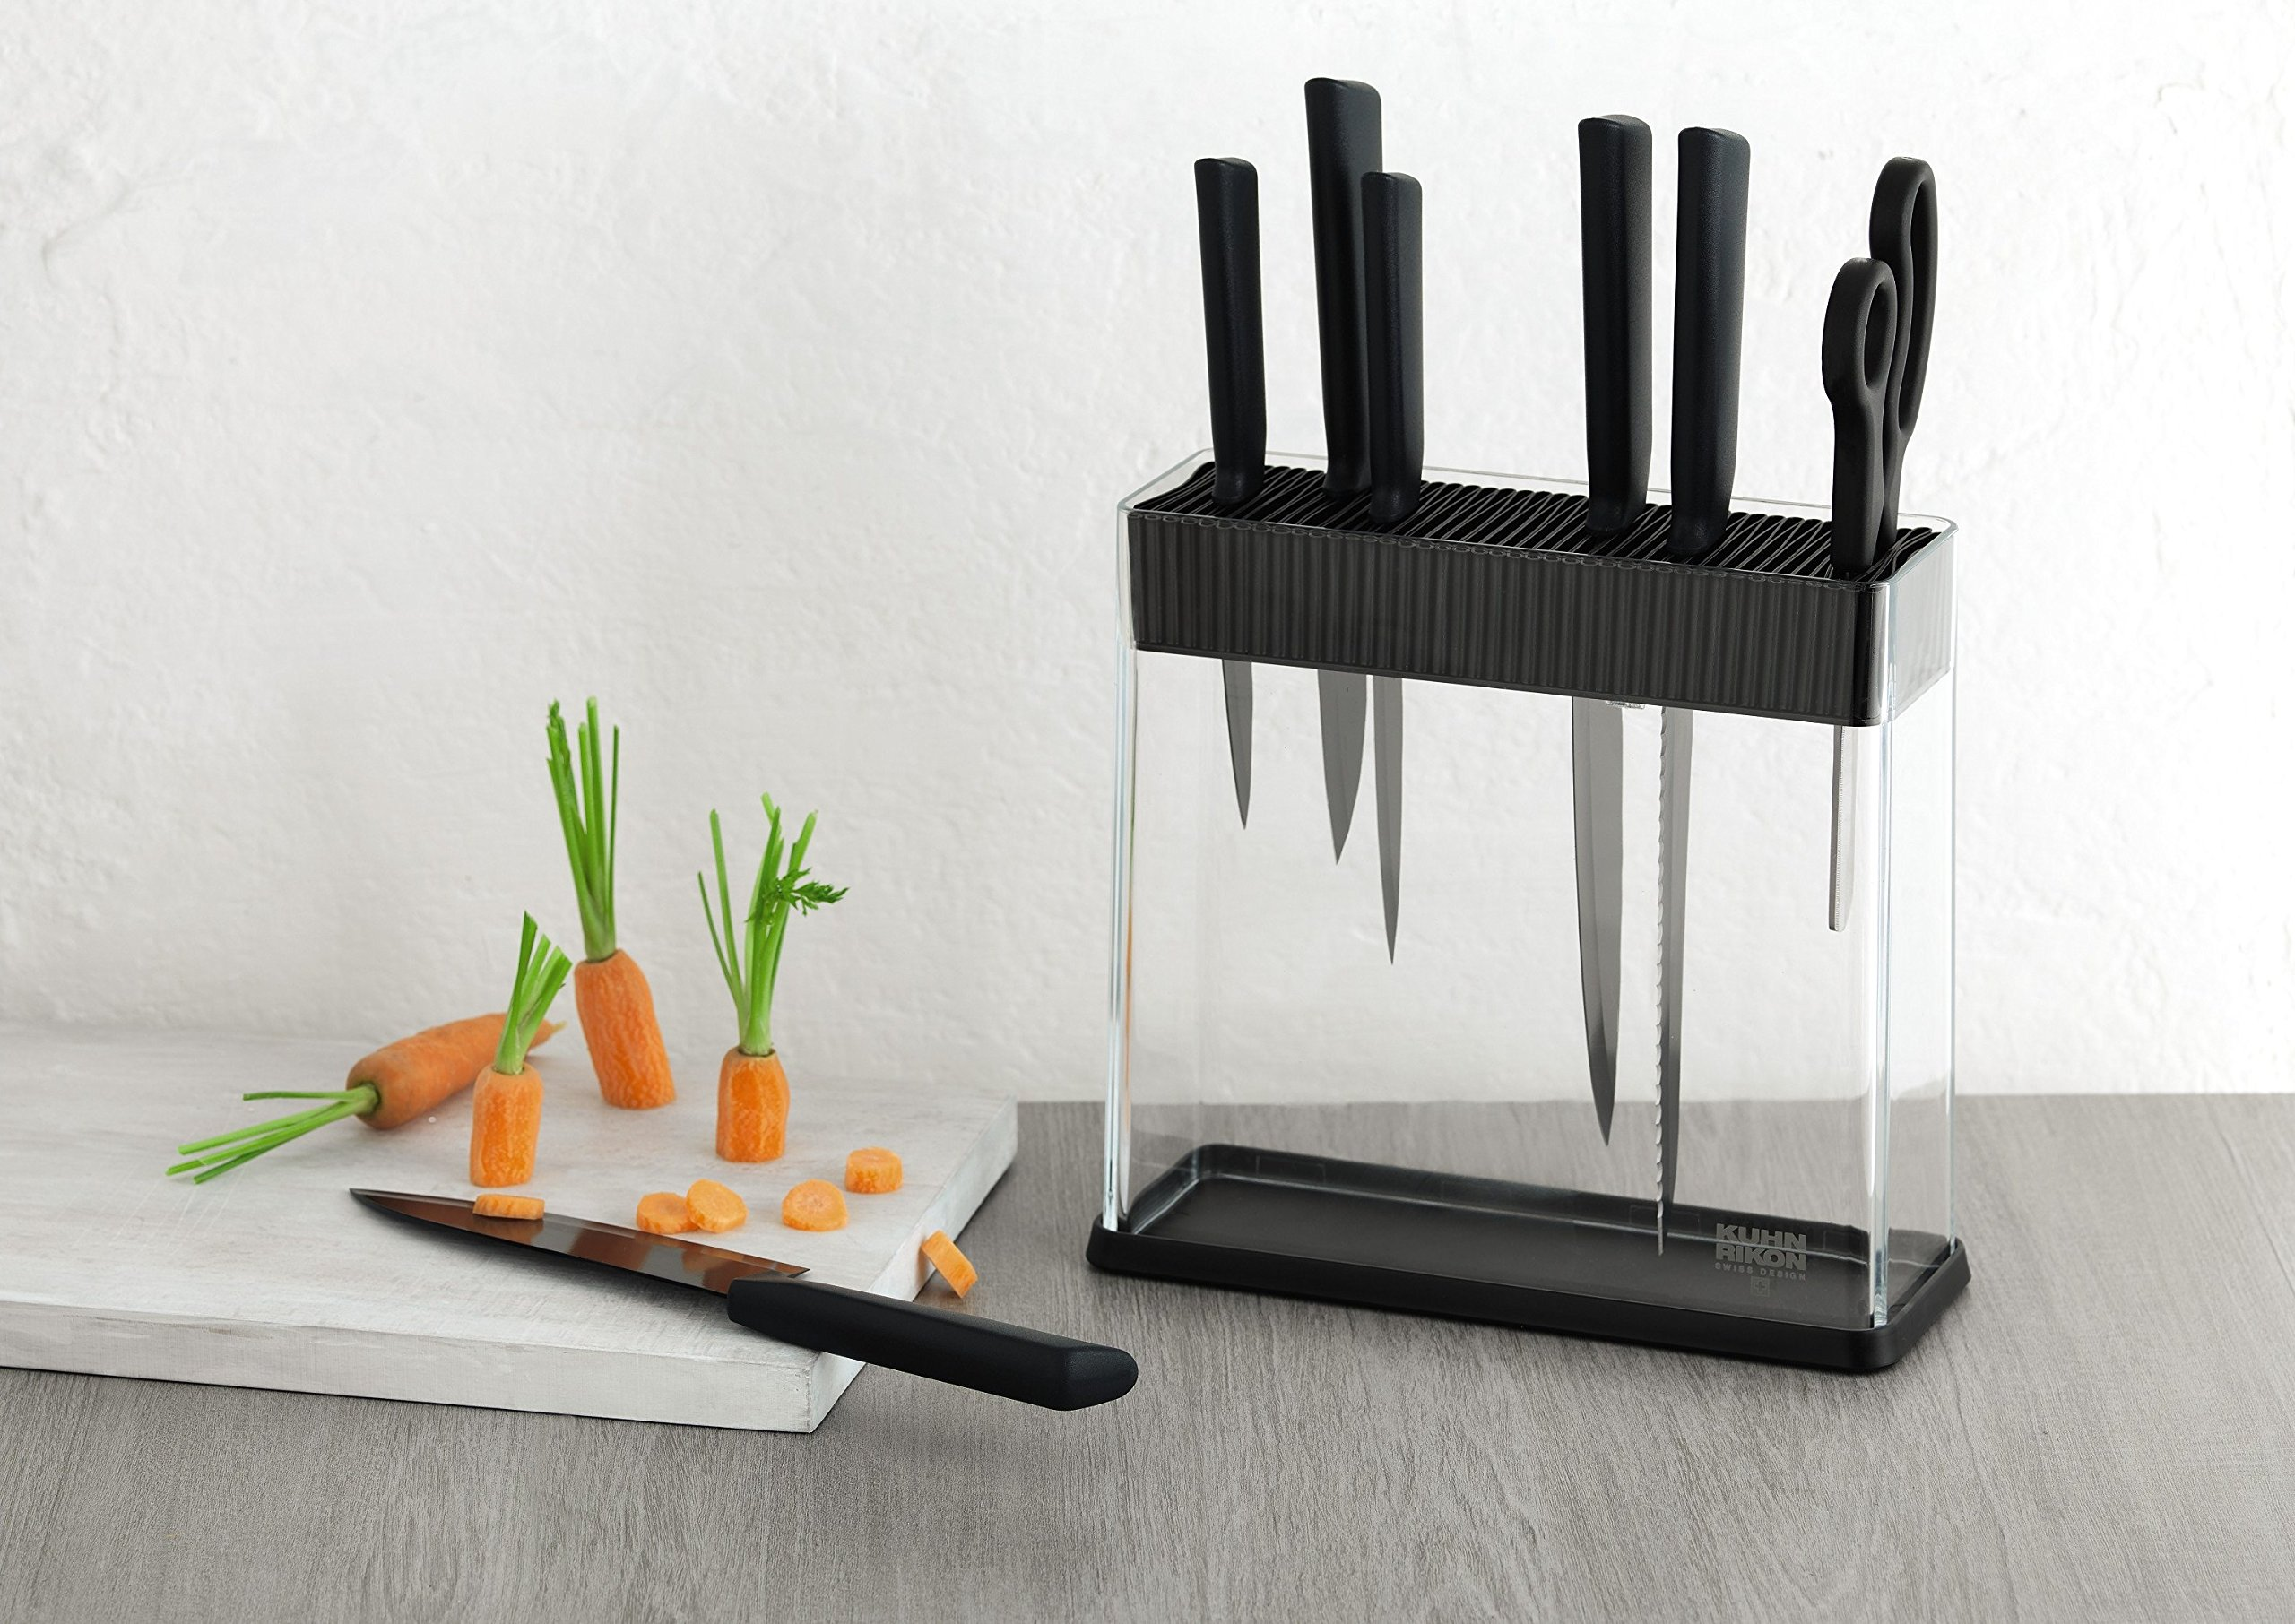 Kuhn Rikon Vision Clear Slotted Easy-to-Clean Knife Stand/Block, Rectangle by Kuhn Rikon (Image #3)